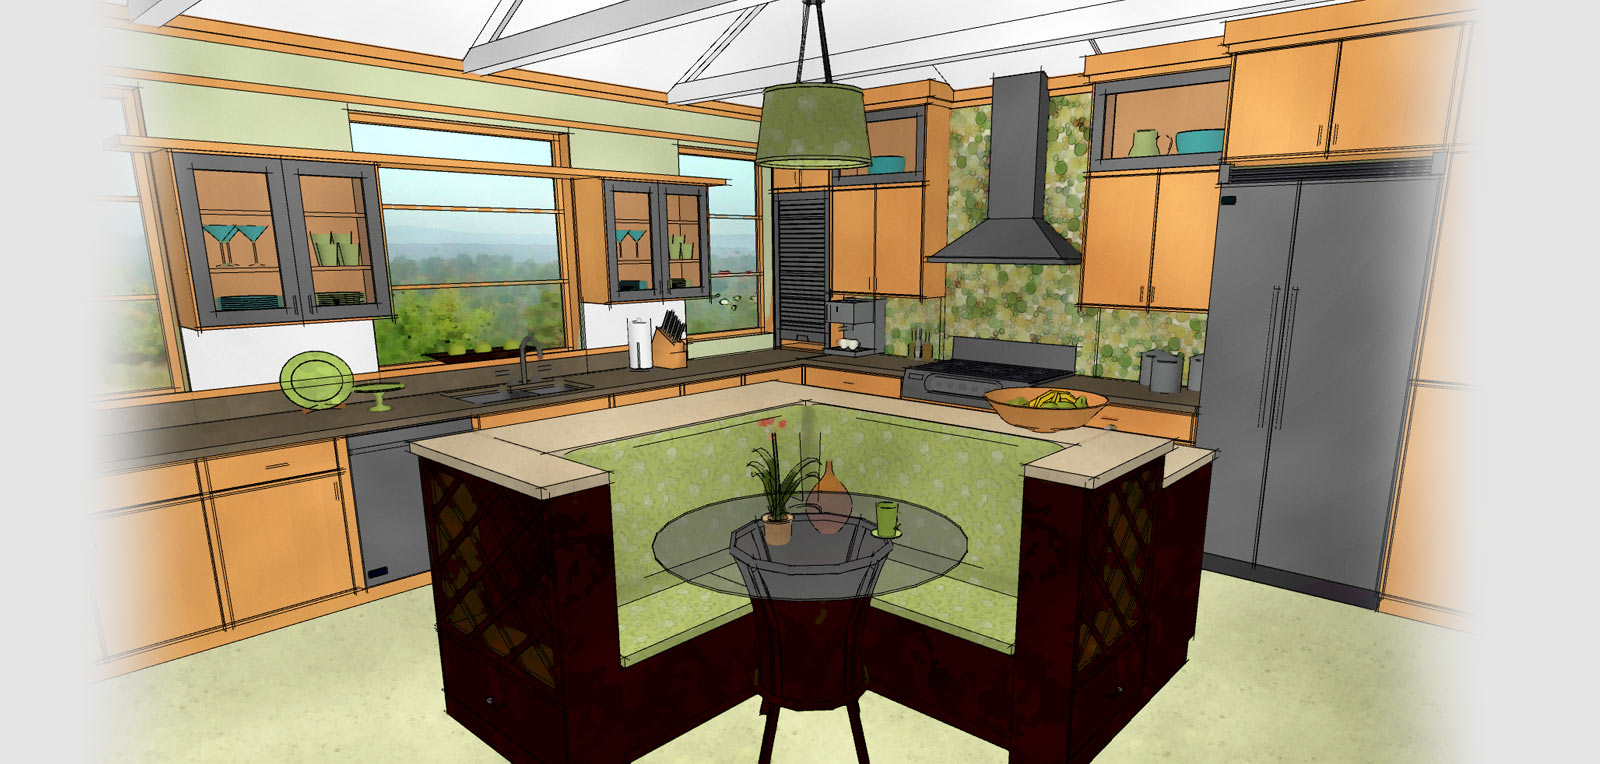 Technical Drawing Of A Kitchen Generated By Home Designer